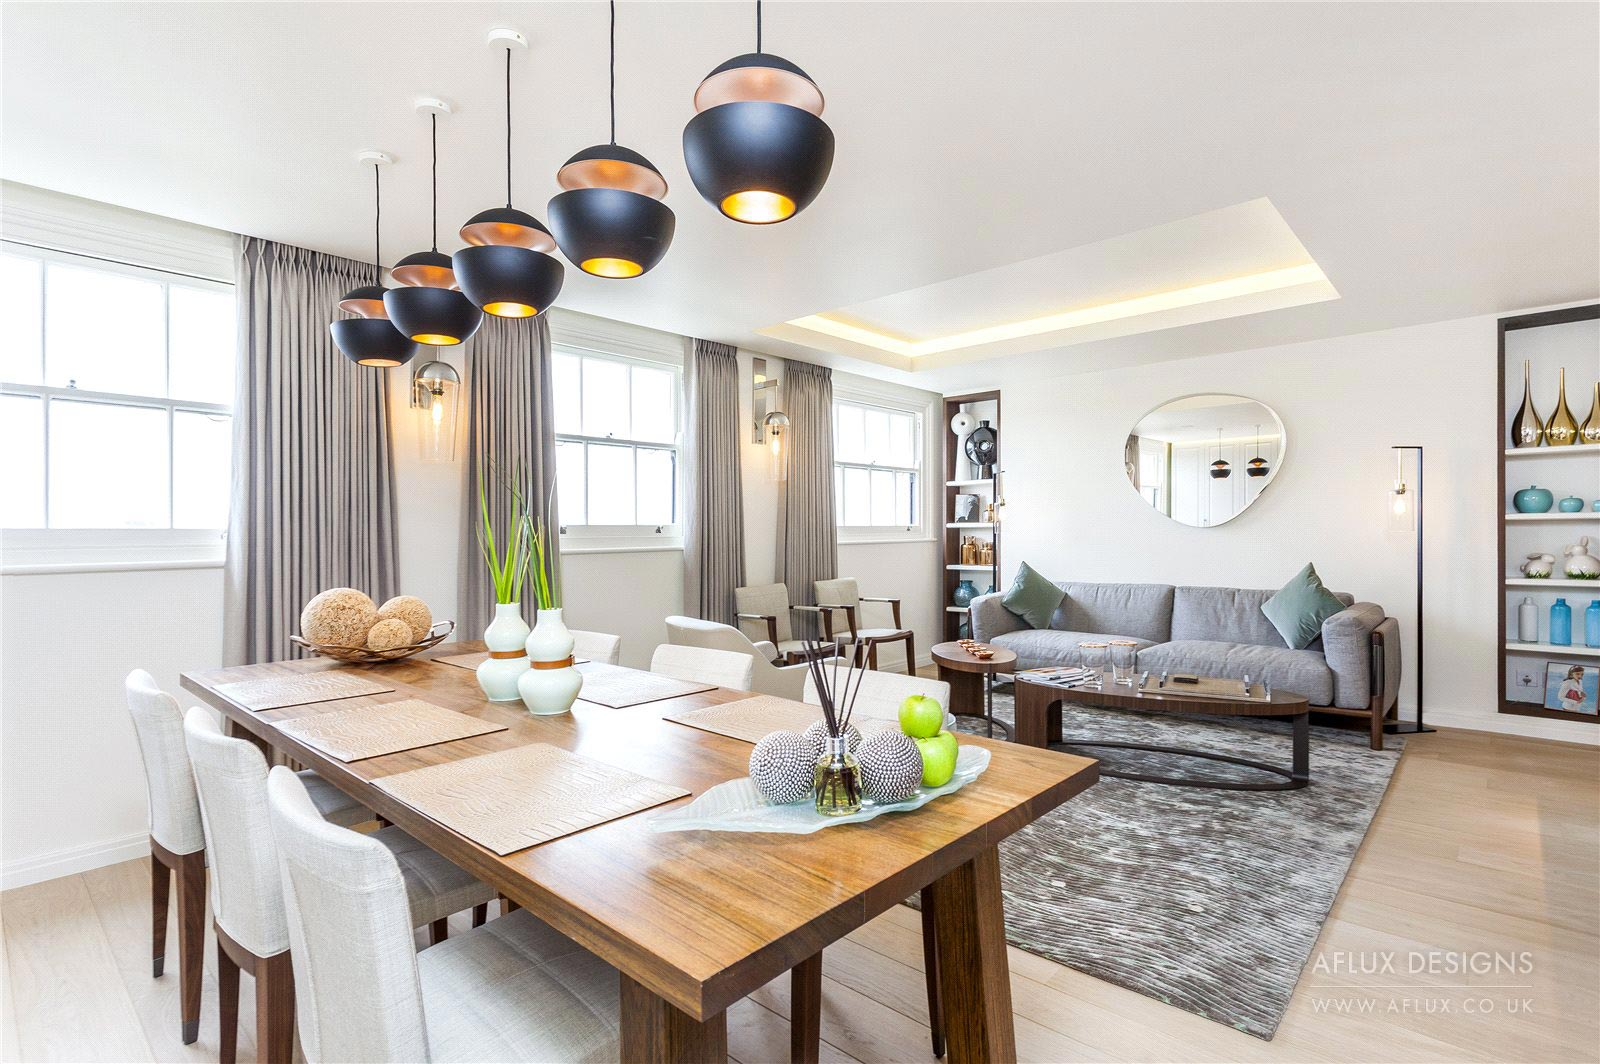 Hyde Park Gardens - LONDON W2A high end finish in a high end area. The challenge to design and turn a compact space with low ceilings into a bespoke, spacious and modern apartment with a contemporary finish.